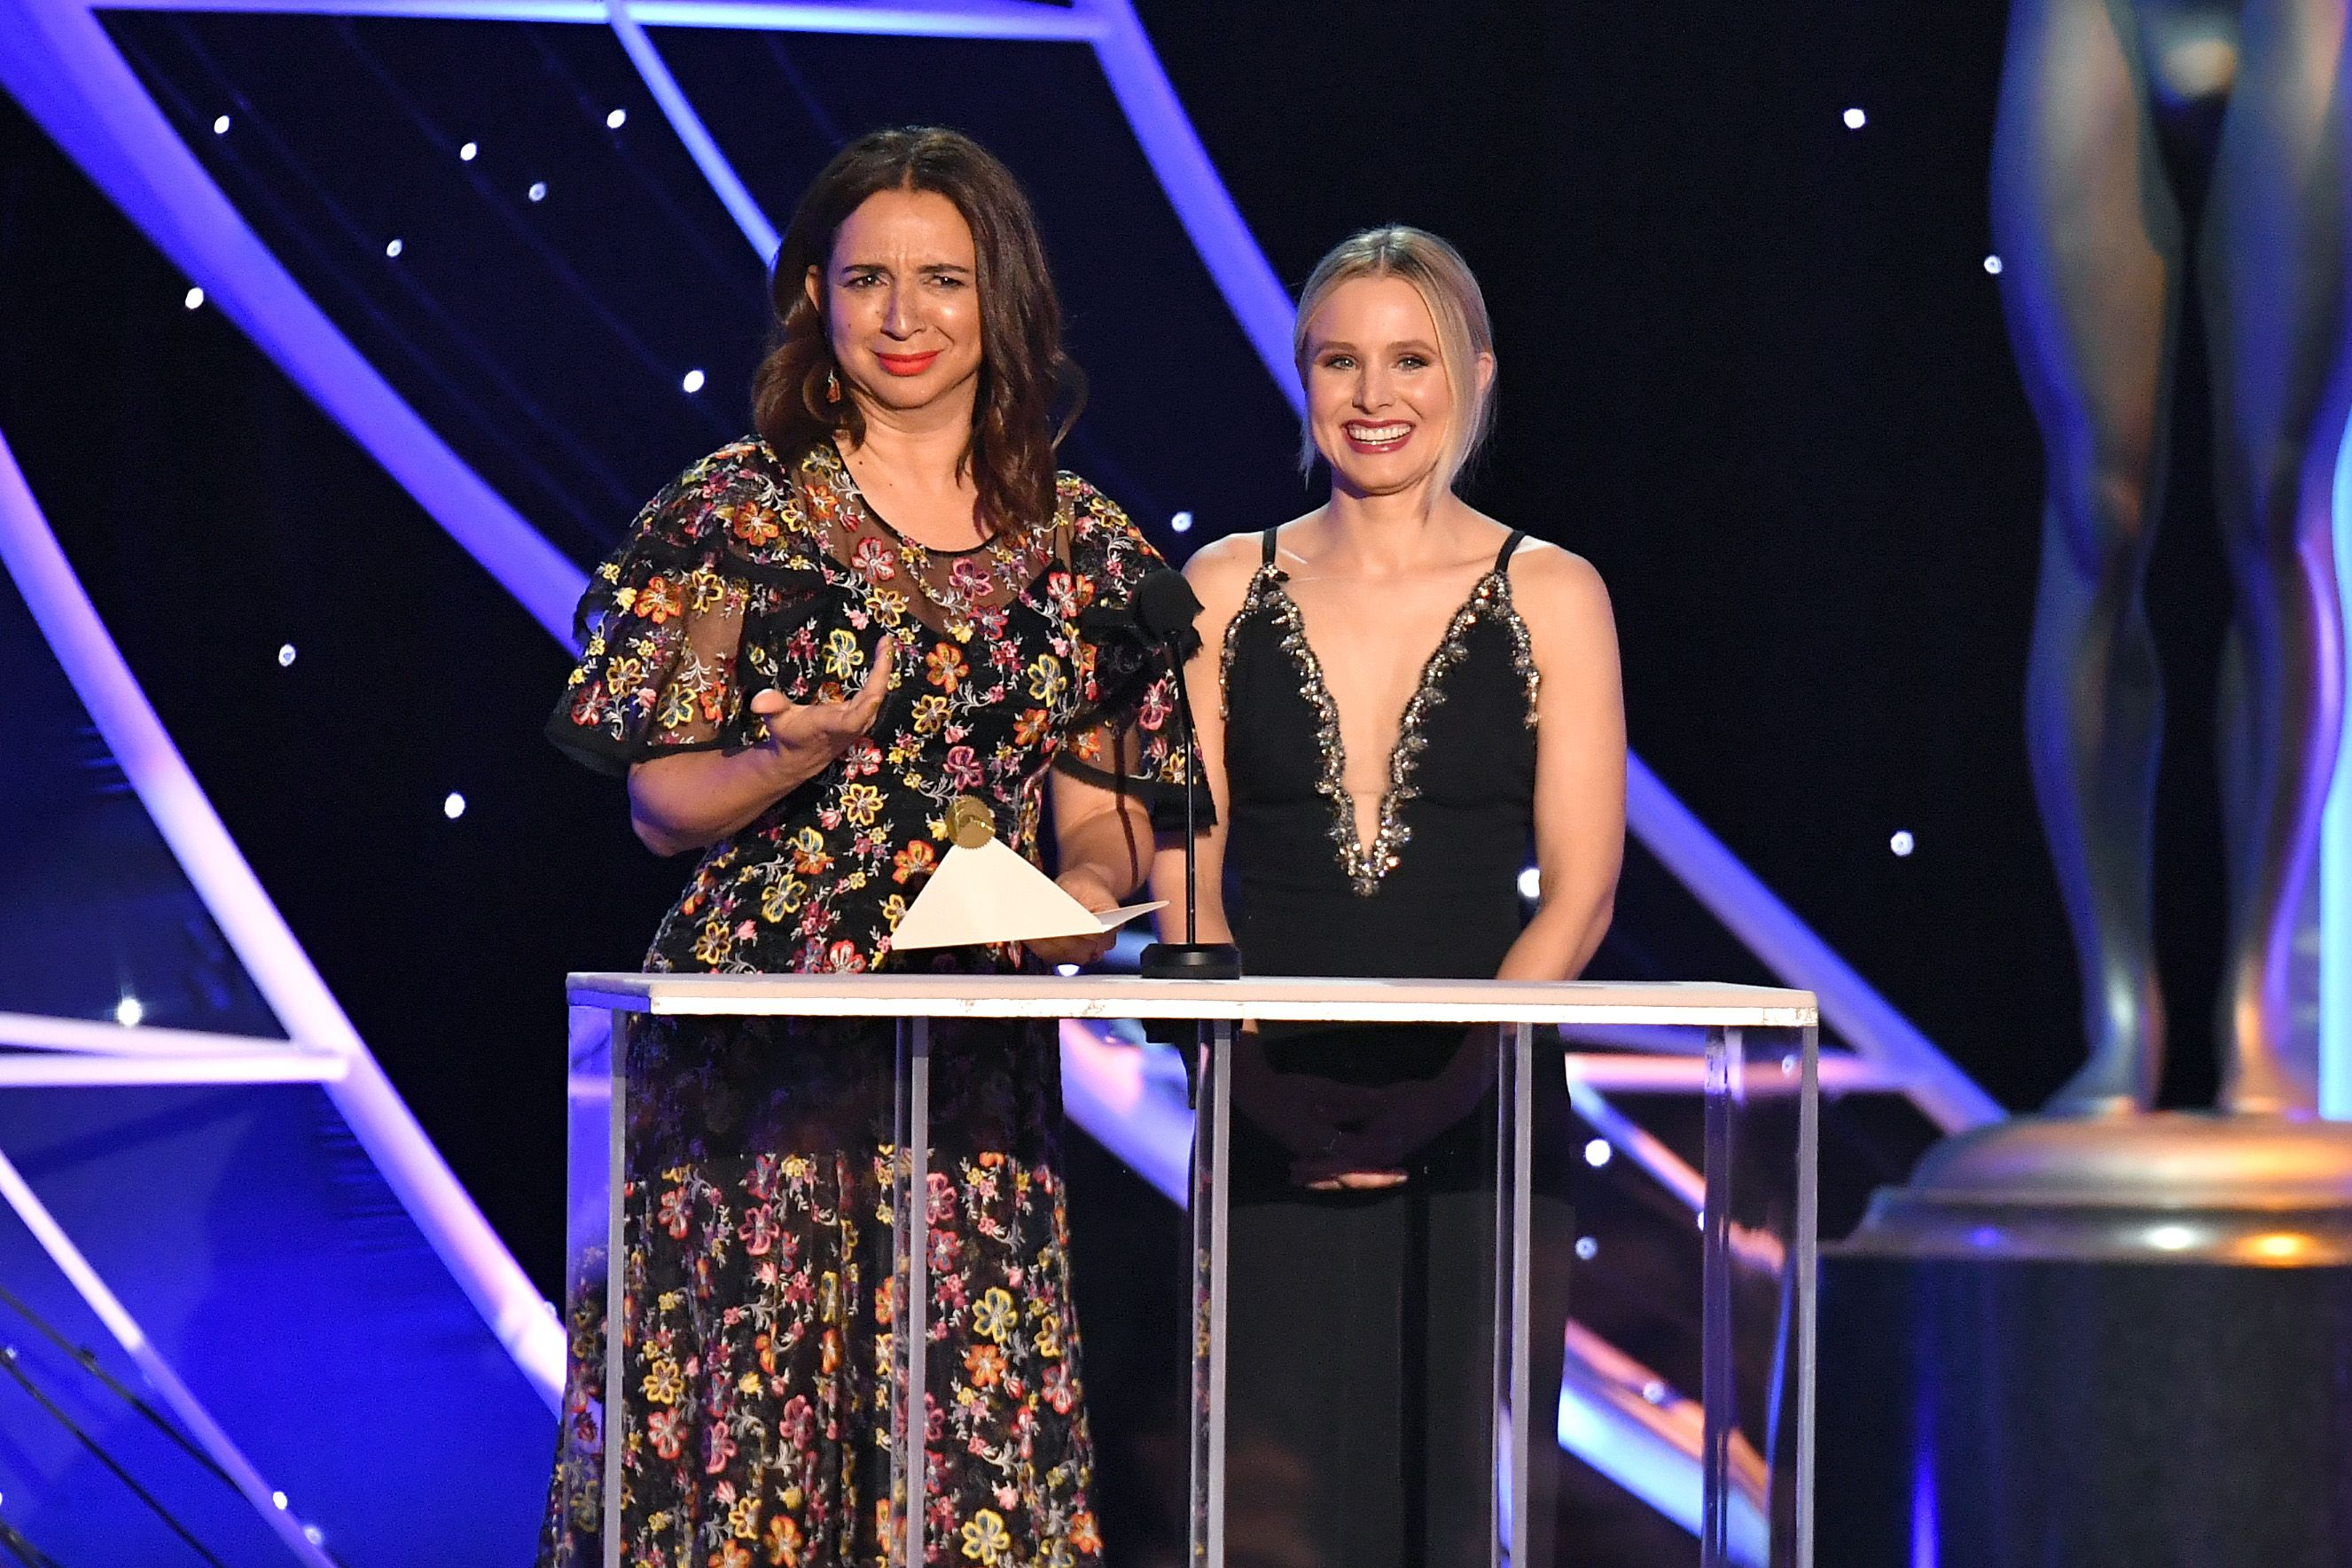 Maya Roudolph and Kristen Bell24th Annual Screen Actors Guild Awards, Show, Los Angeles, USA - 21 Jan 2018